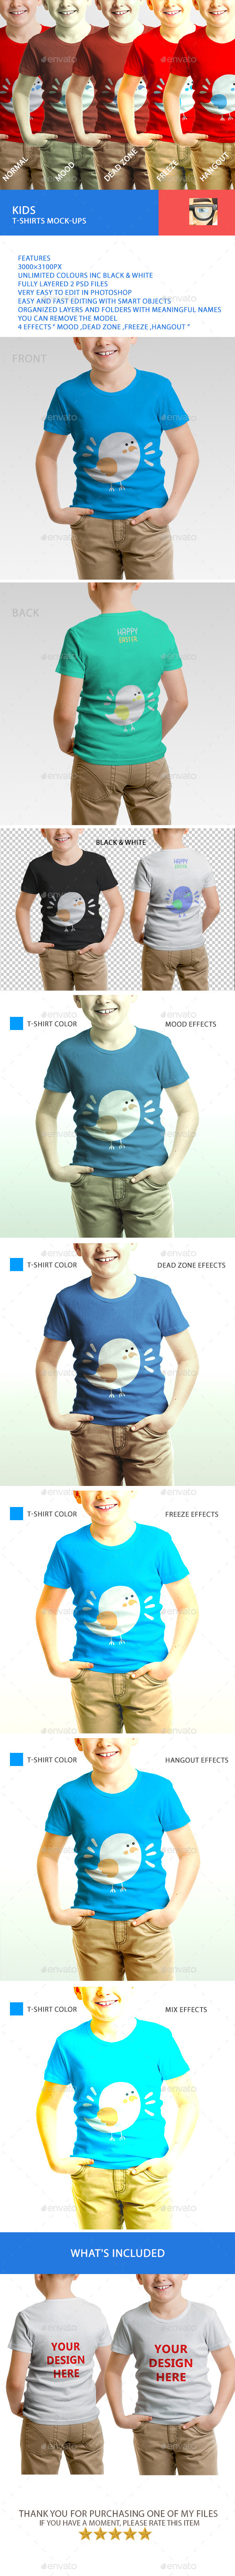 GraphicRiver Kids T-Shirts Mock-Ups 11145091